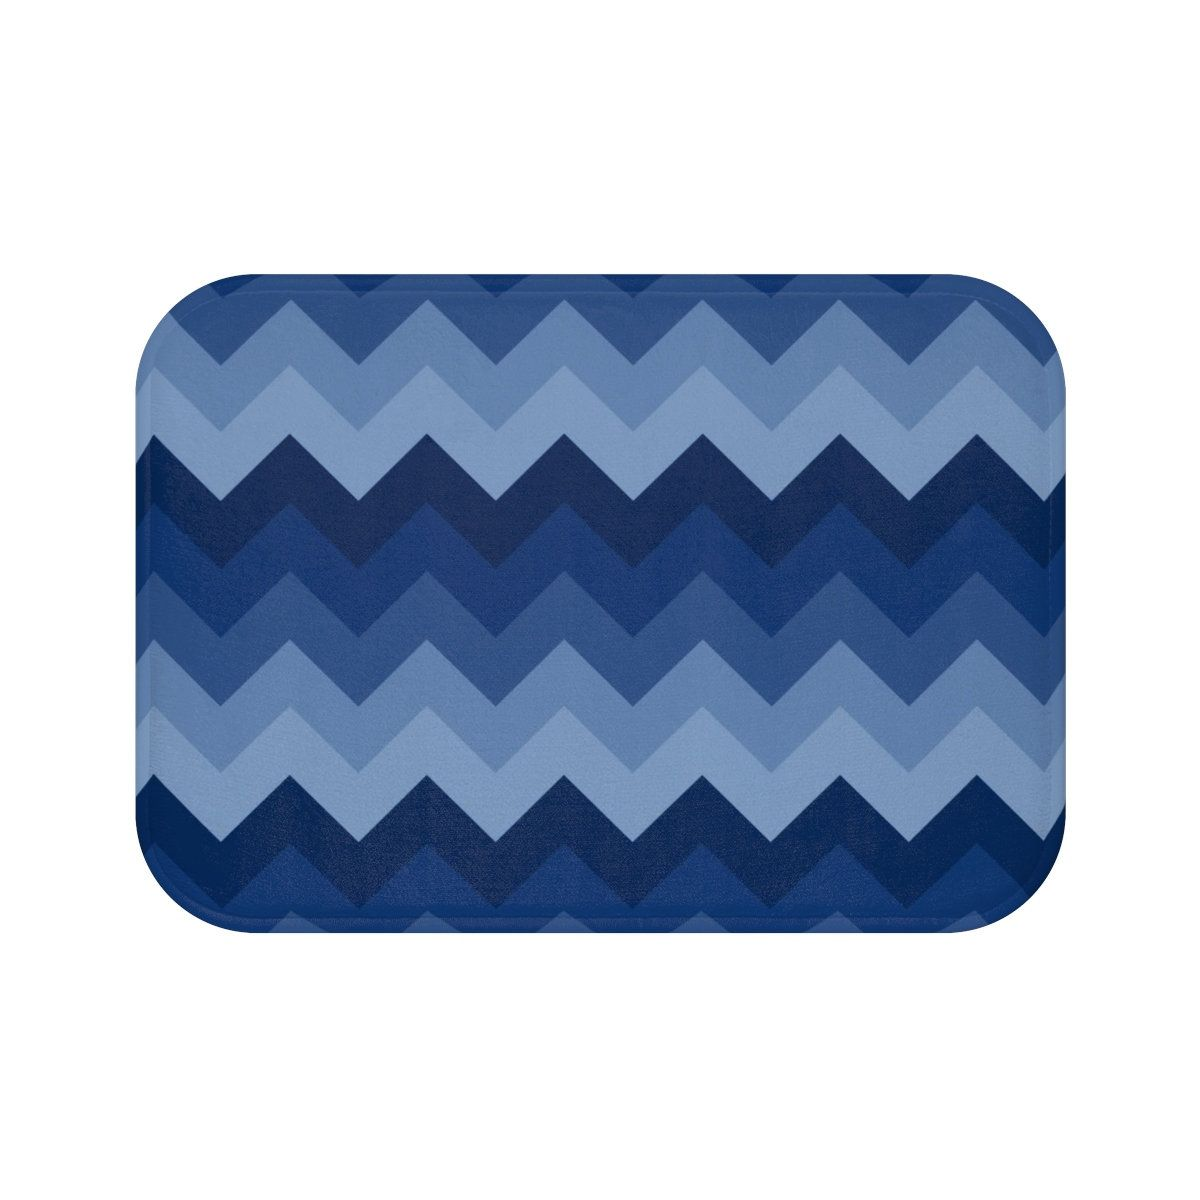 Navy Blue Bath Mat Memory Foam Bathroom Bathtub Shower Decor